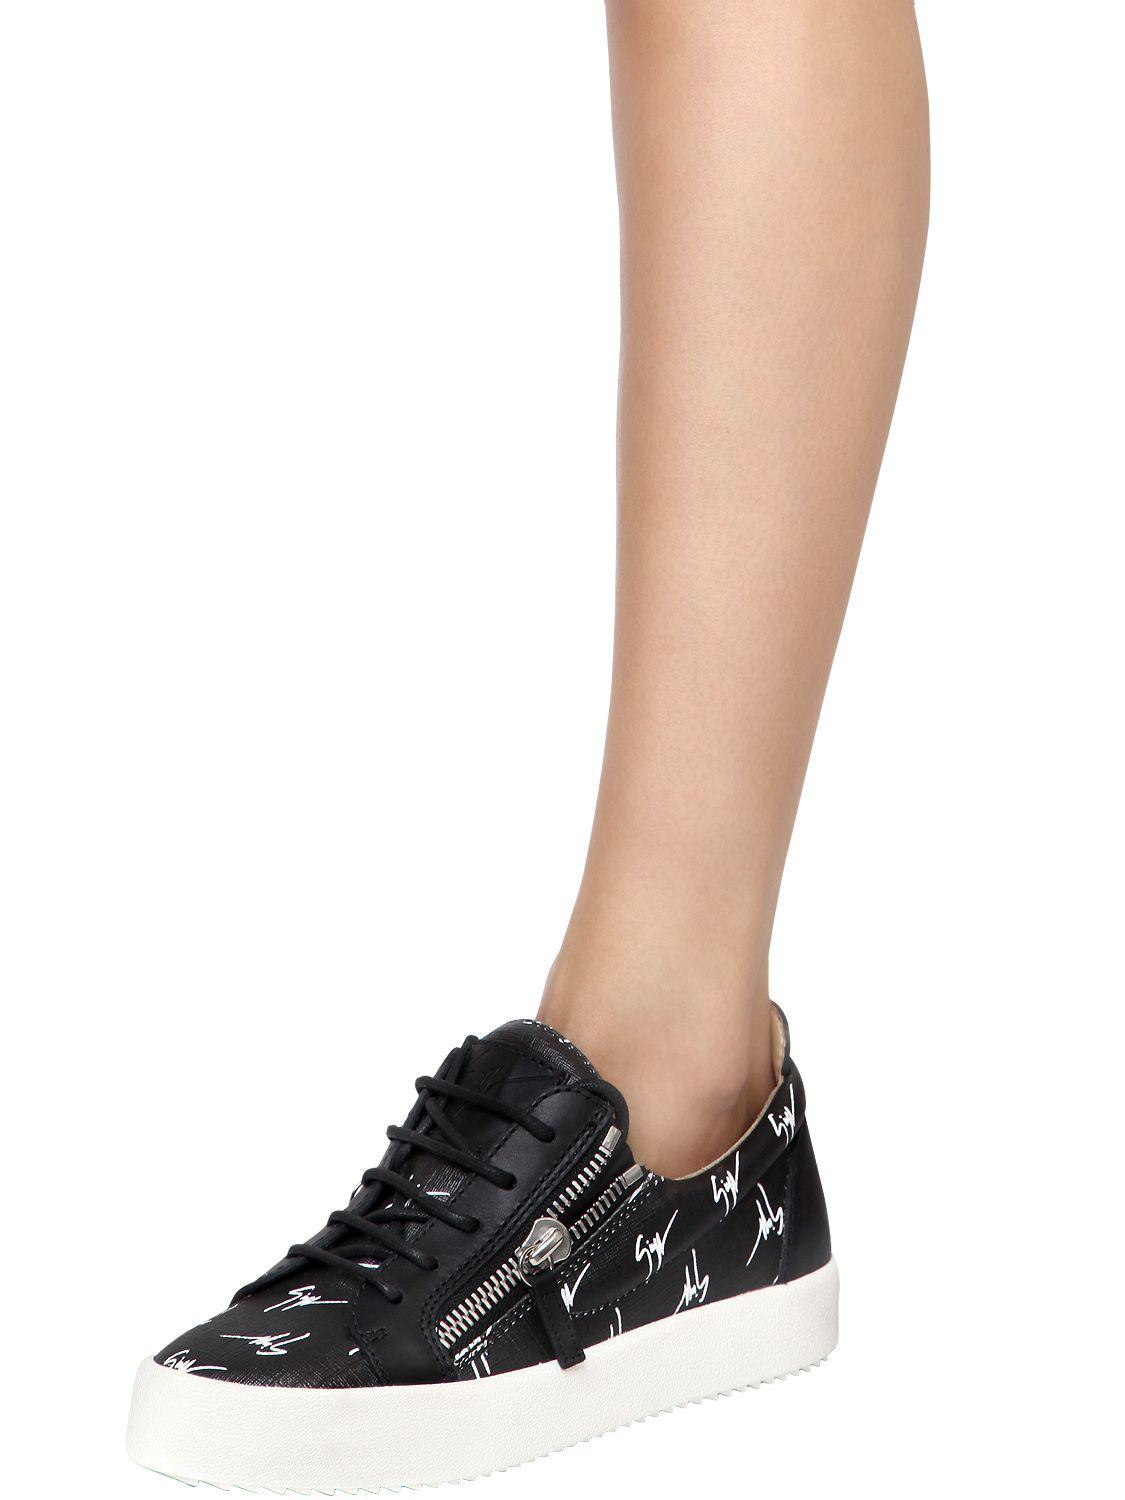 Giuseppe Zanotti 20MM LOGO ZIP-UP FAUX LEATHER SNEAKERS G7VzhD2